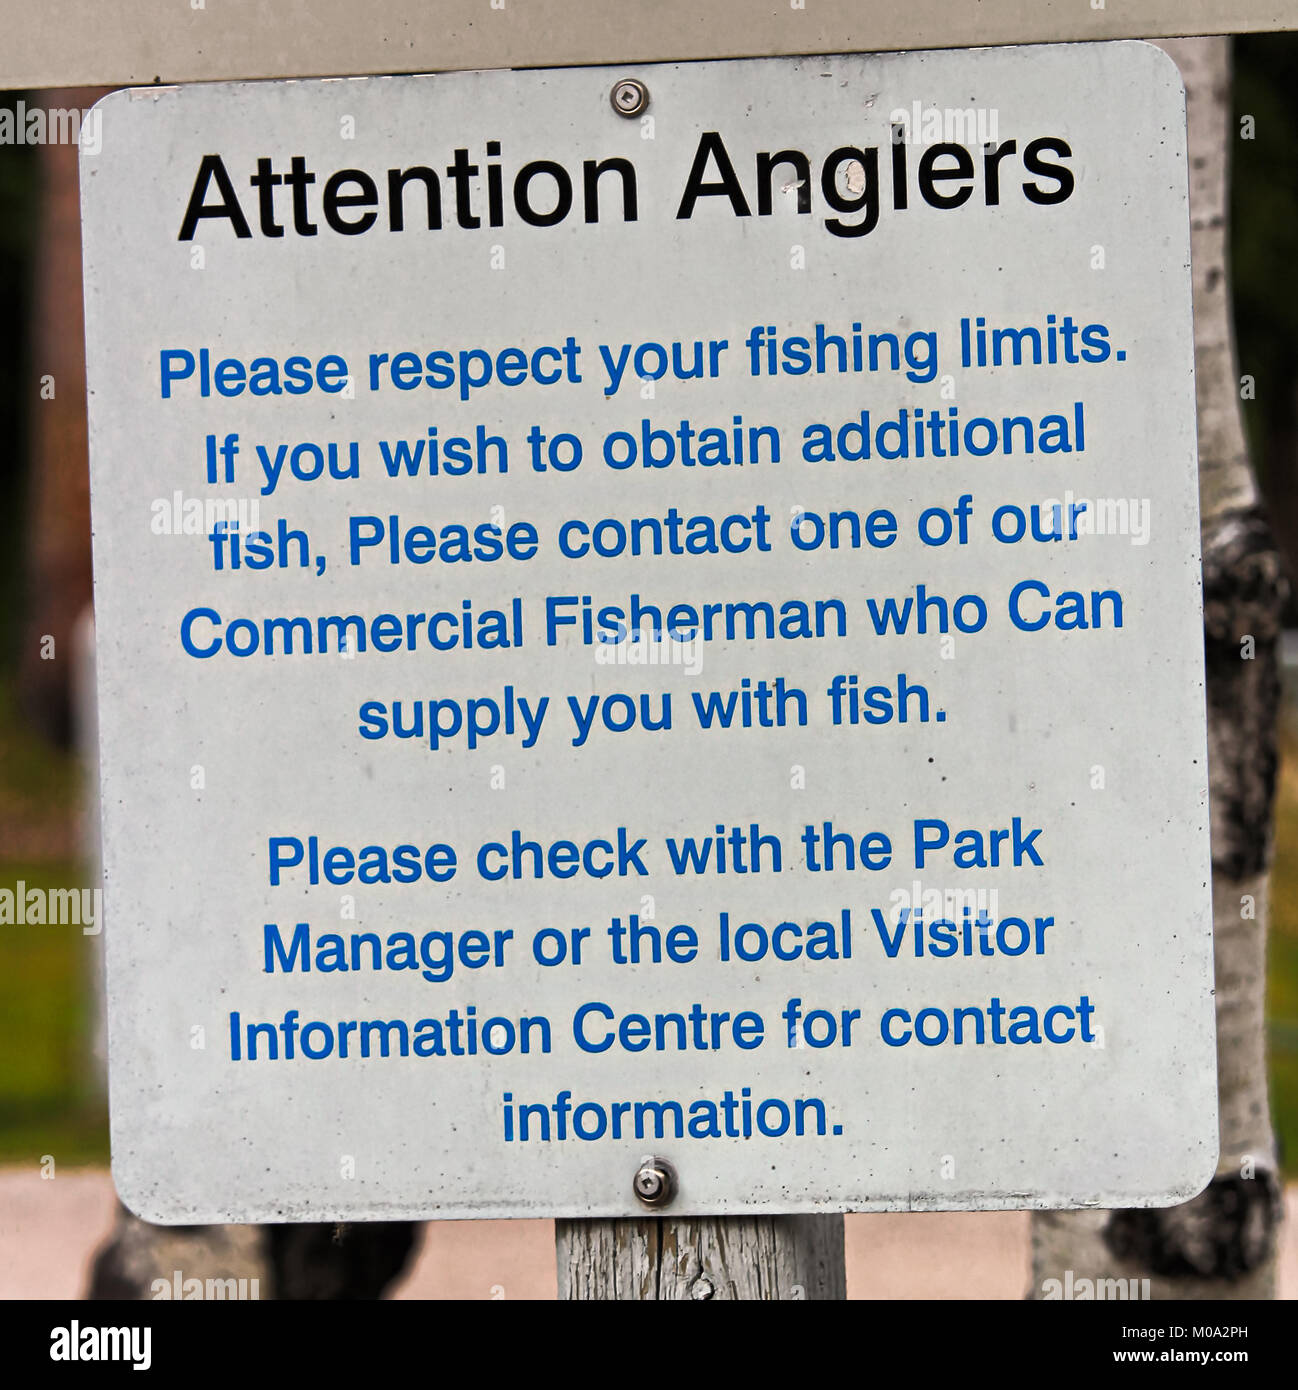 An Attention Anglers Please Respect Your Limits sign - Stock Image